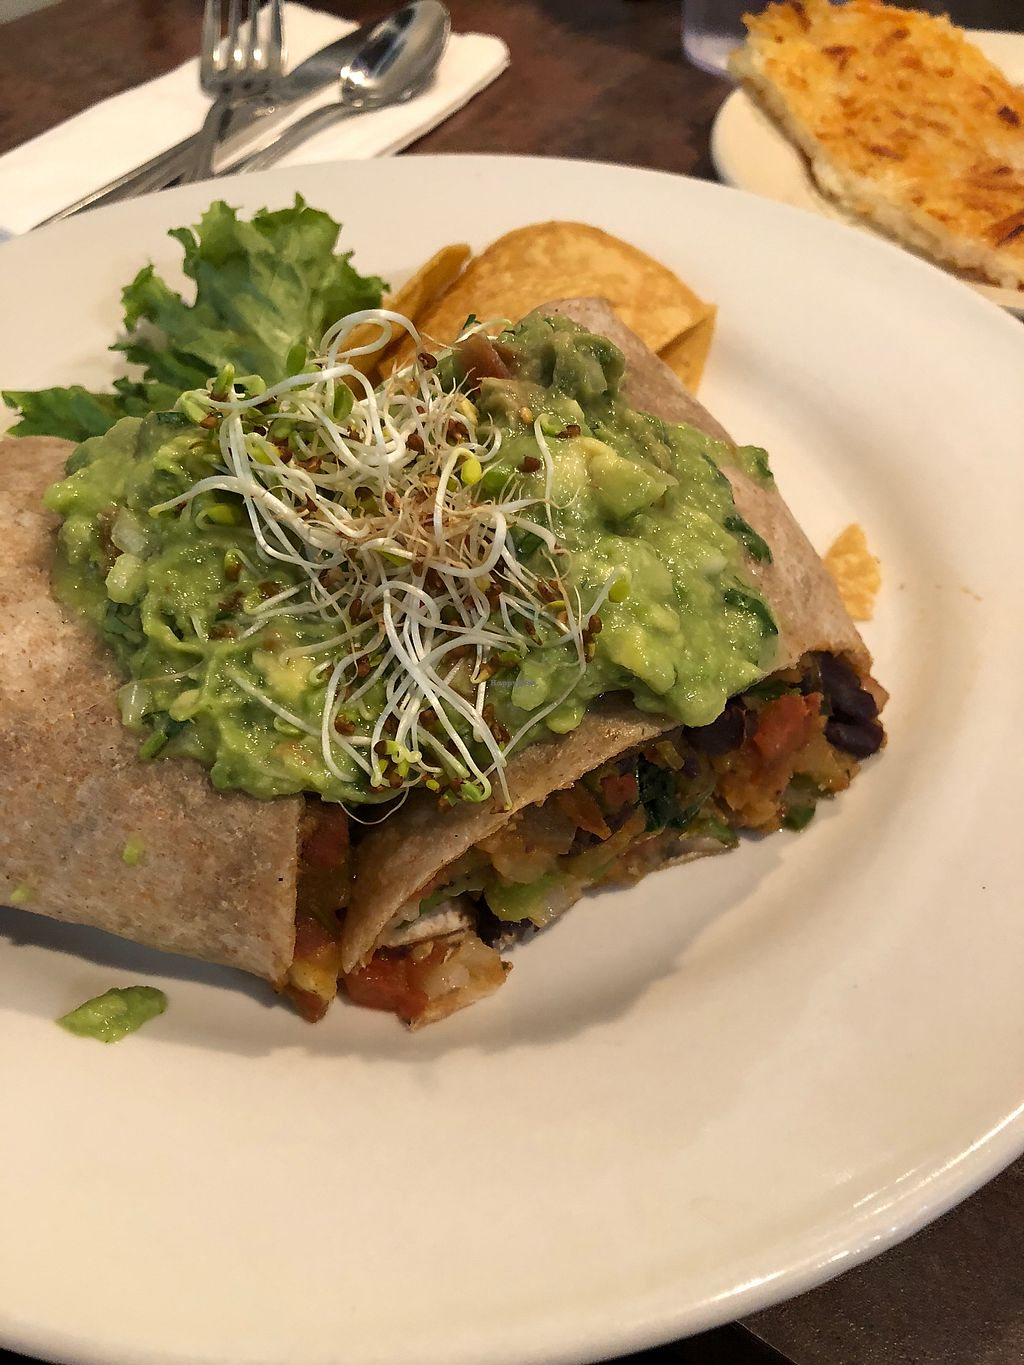 """Photo of Driftwood Cafe  by <a href=""""/members/profile/alexis17"""">alexis17</a> <br/>Tofu breakfast burrito <br/> March 18, 2018  - <a href='/contact/abuse/image/36222/372636'>Report</a>"""